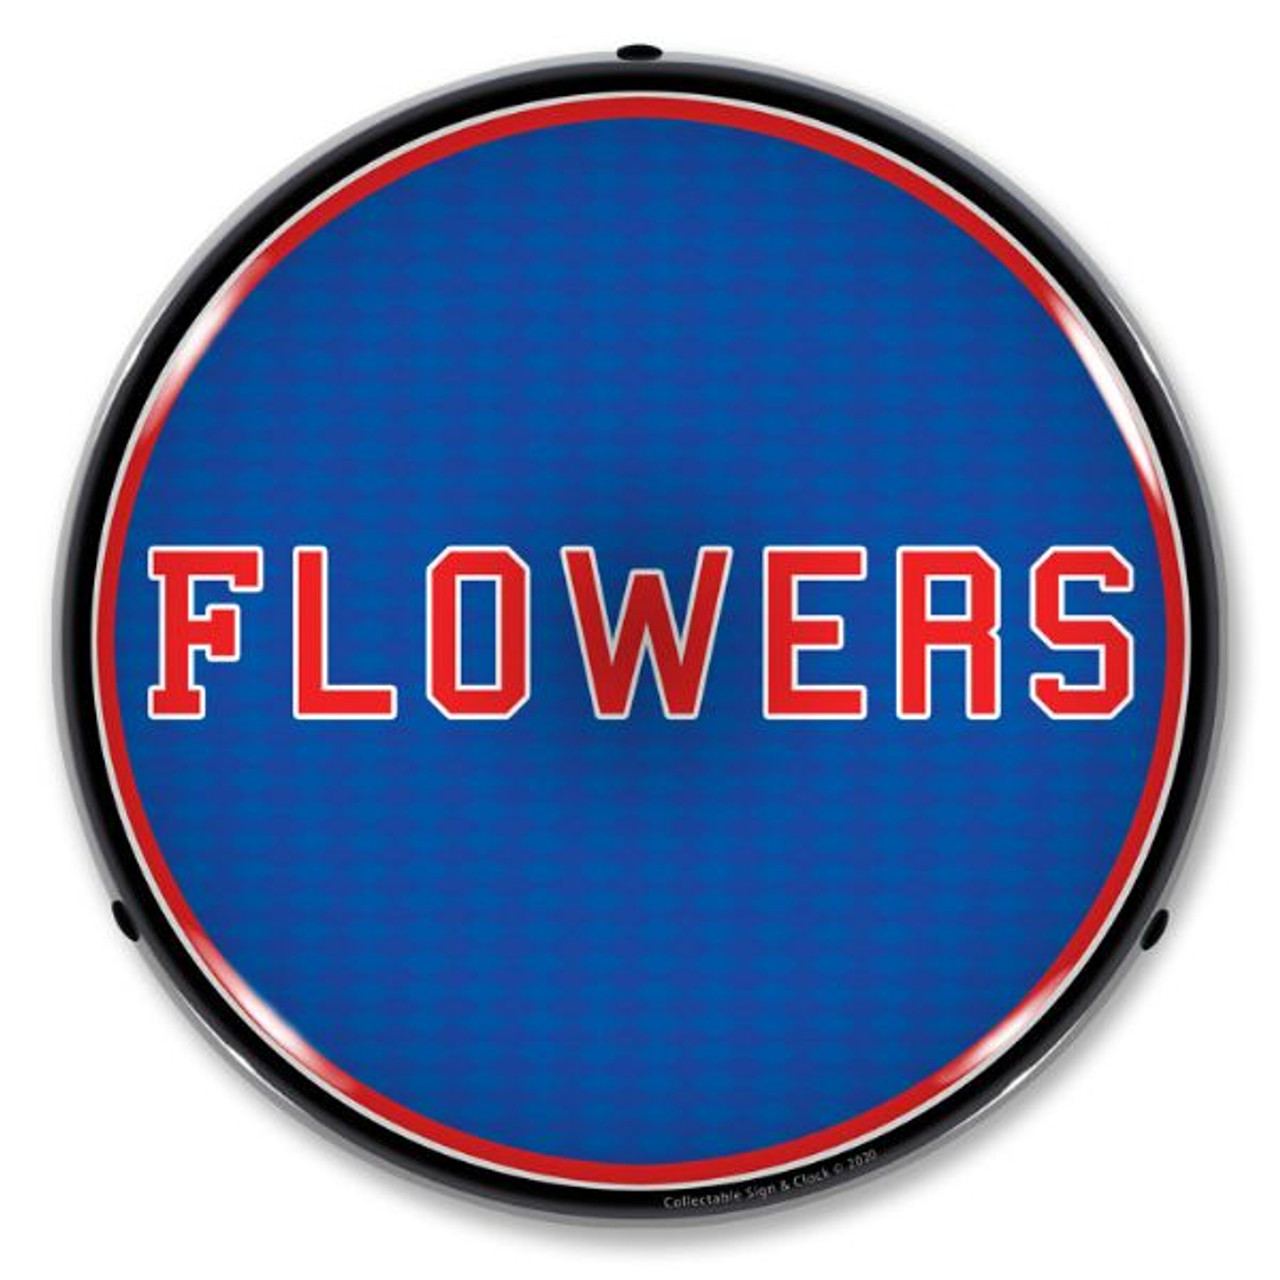 Flowers LED Lighted Business Sign 14 x 14 Inches